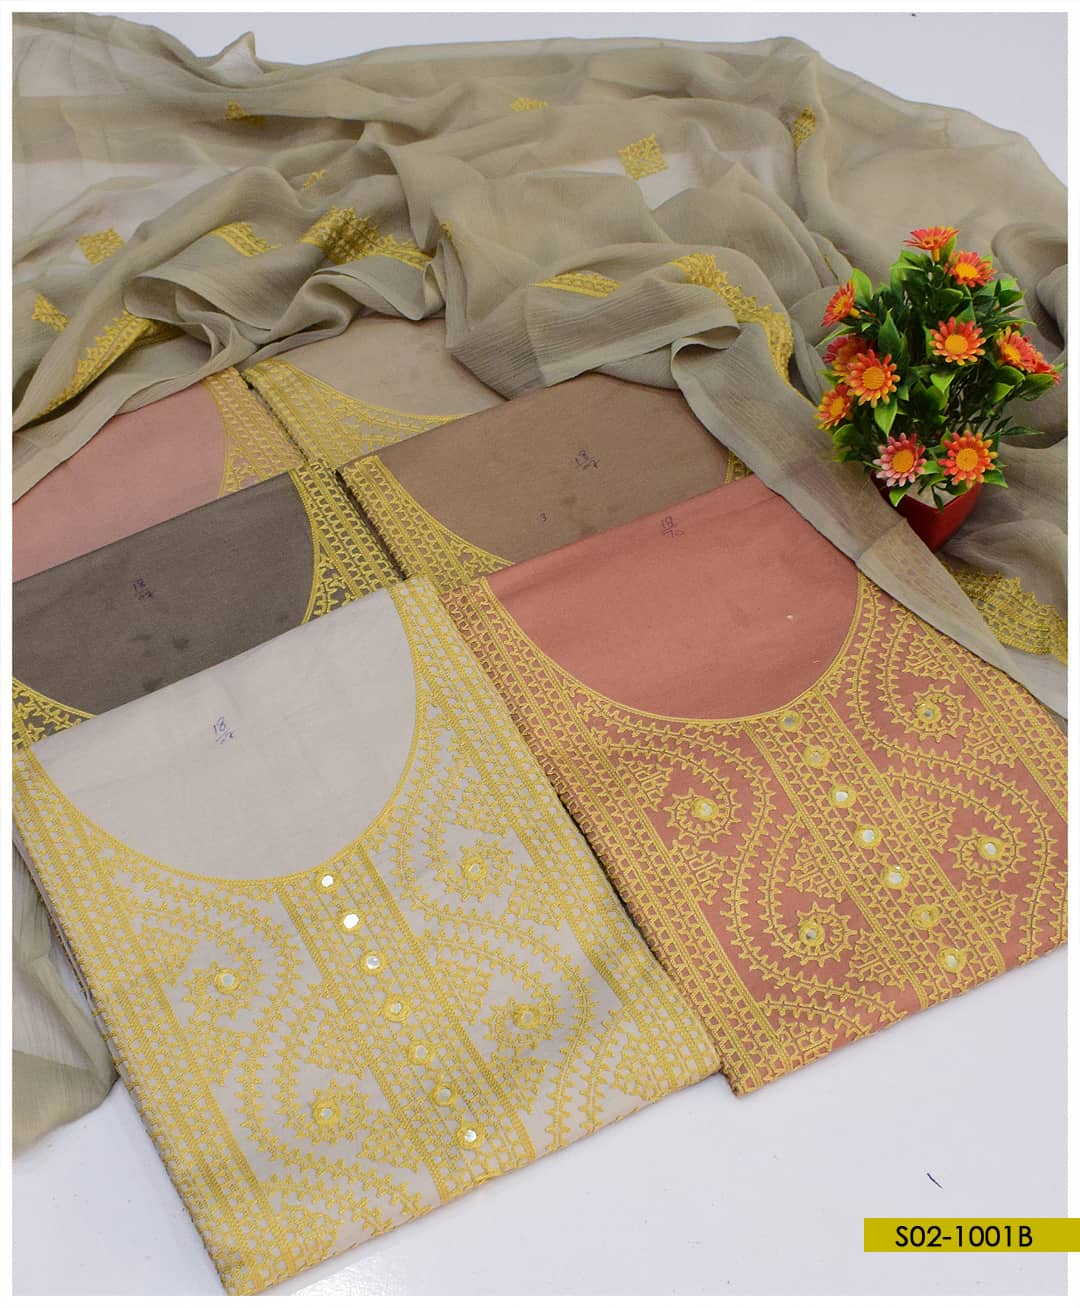 Cotton Lawn Aari Embroidered 3 PC Suits With Chiffon Dupatta- S02-1001B